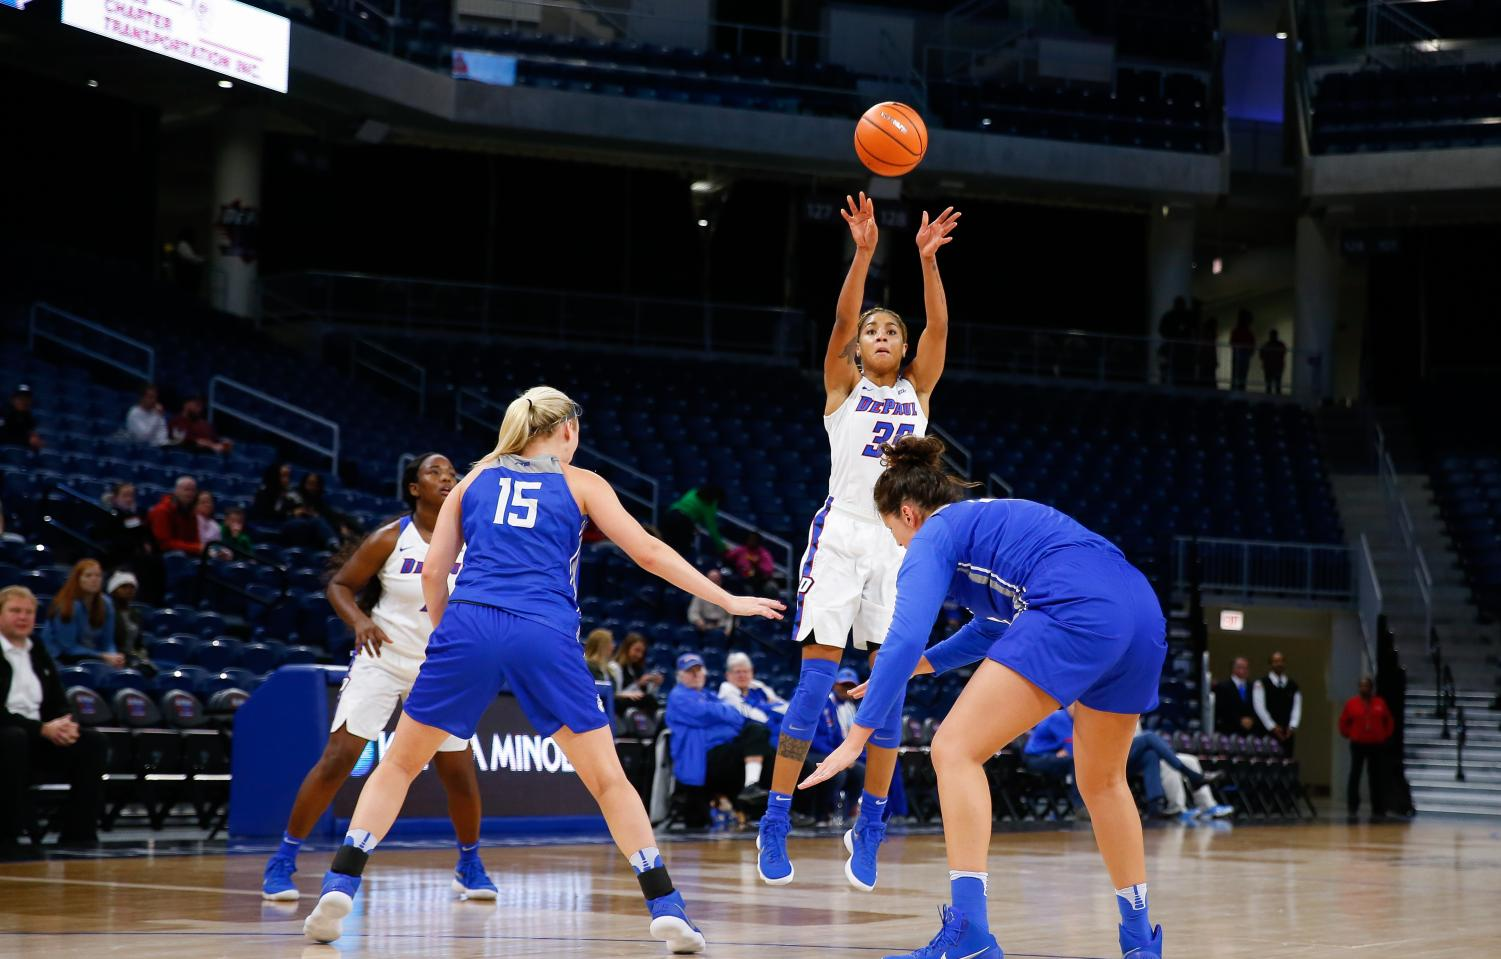 Junior forward Mart'e Grays collected her third career double-double with 21 points and 10 rebounds.   (Photo Courtesy of DePaul Athletics)